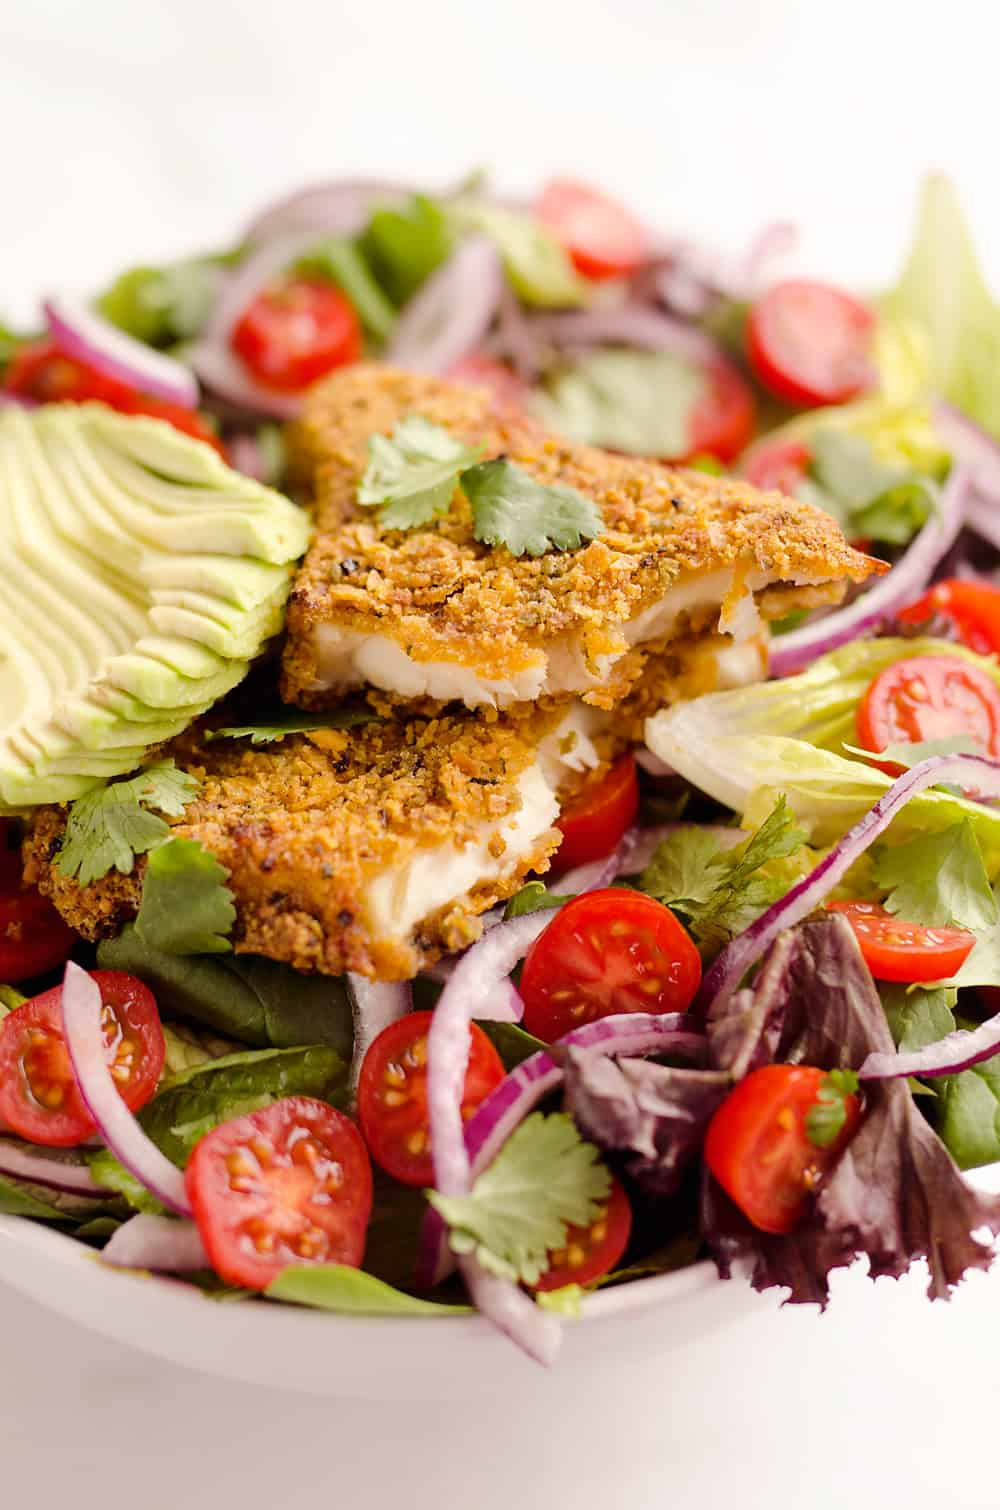 Southwest Tortilla Crusted Tilapia Salad is an easy and healthy dinner idea with a bed of mixed greens topped with tomatoes, avocado, red onion, Tortilla Crusted Tilapia and a homemade Chipotle Lime Dressing.